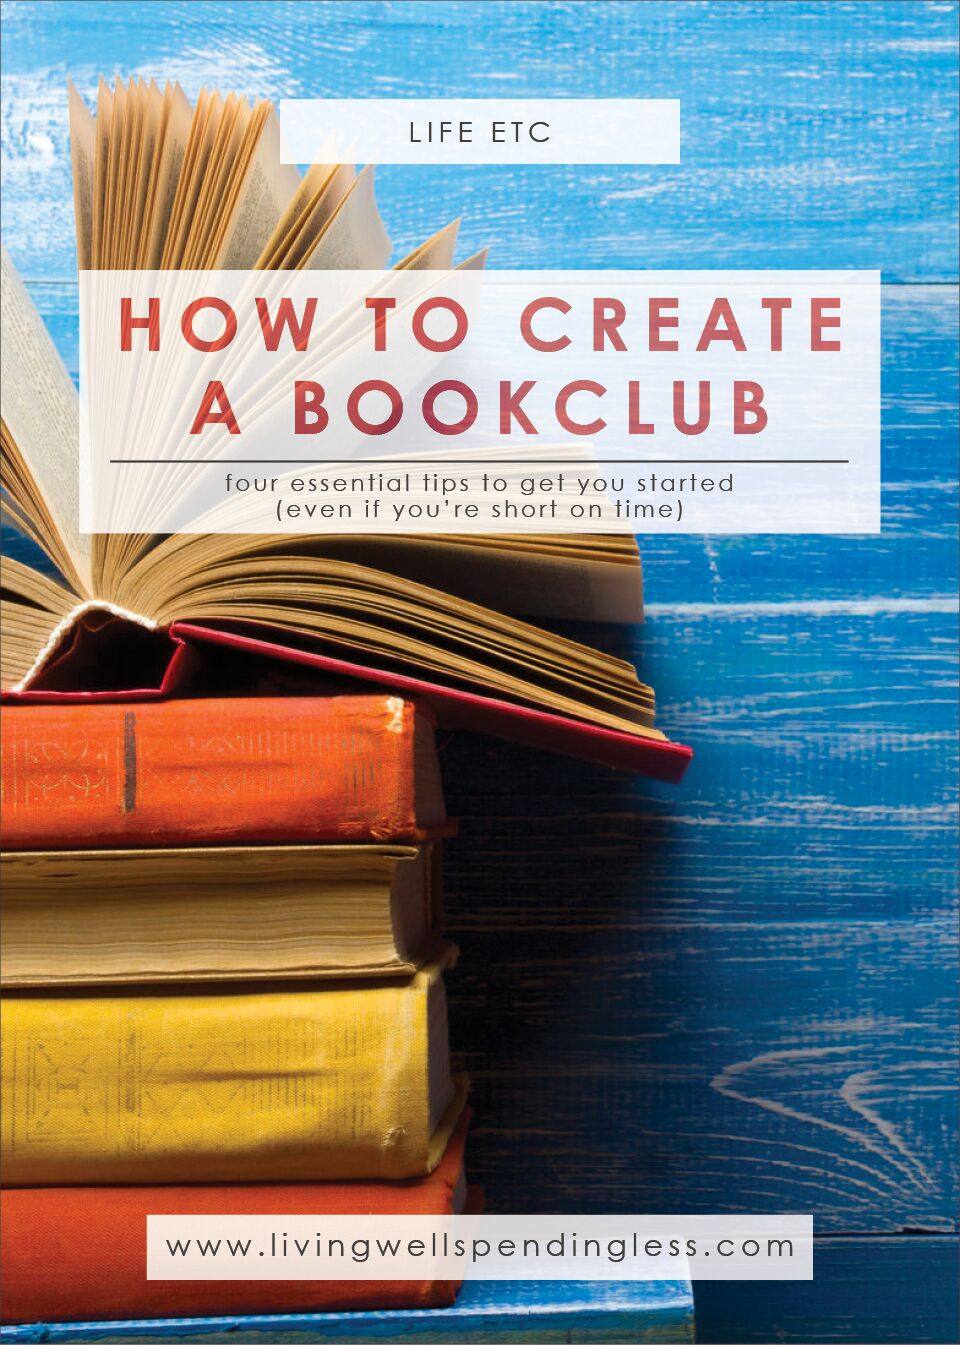 How to Start a Book Club | Why Start a Book Club? | Four essential tips to get you started, even if you're short on time